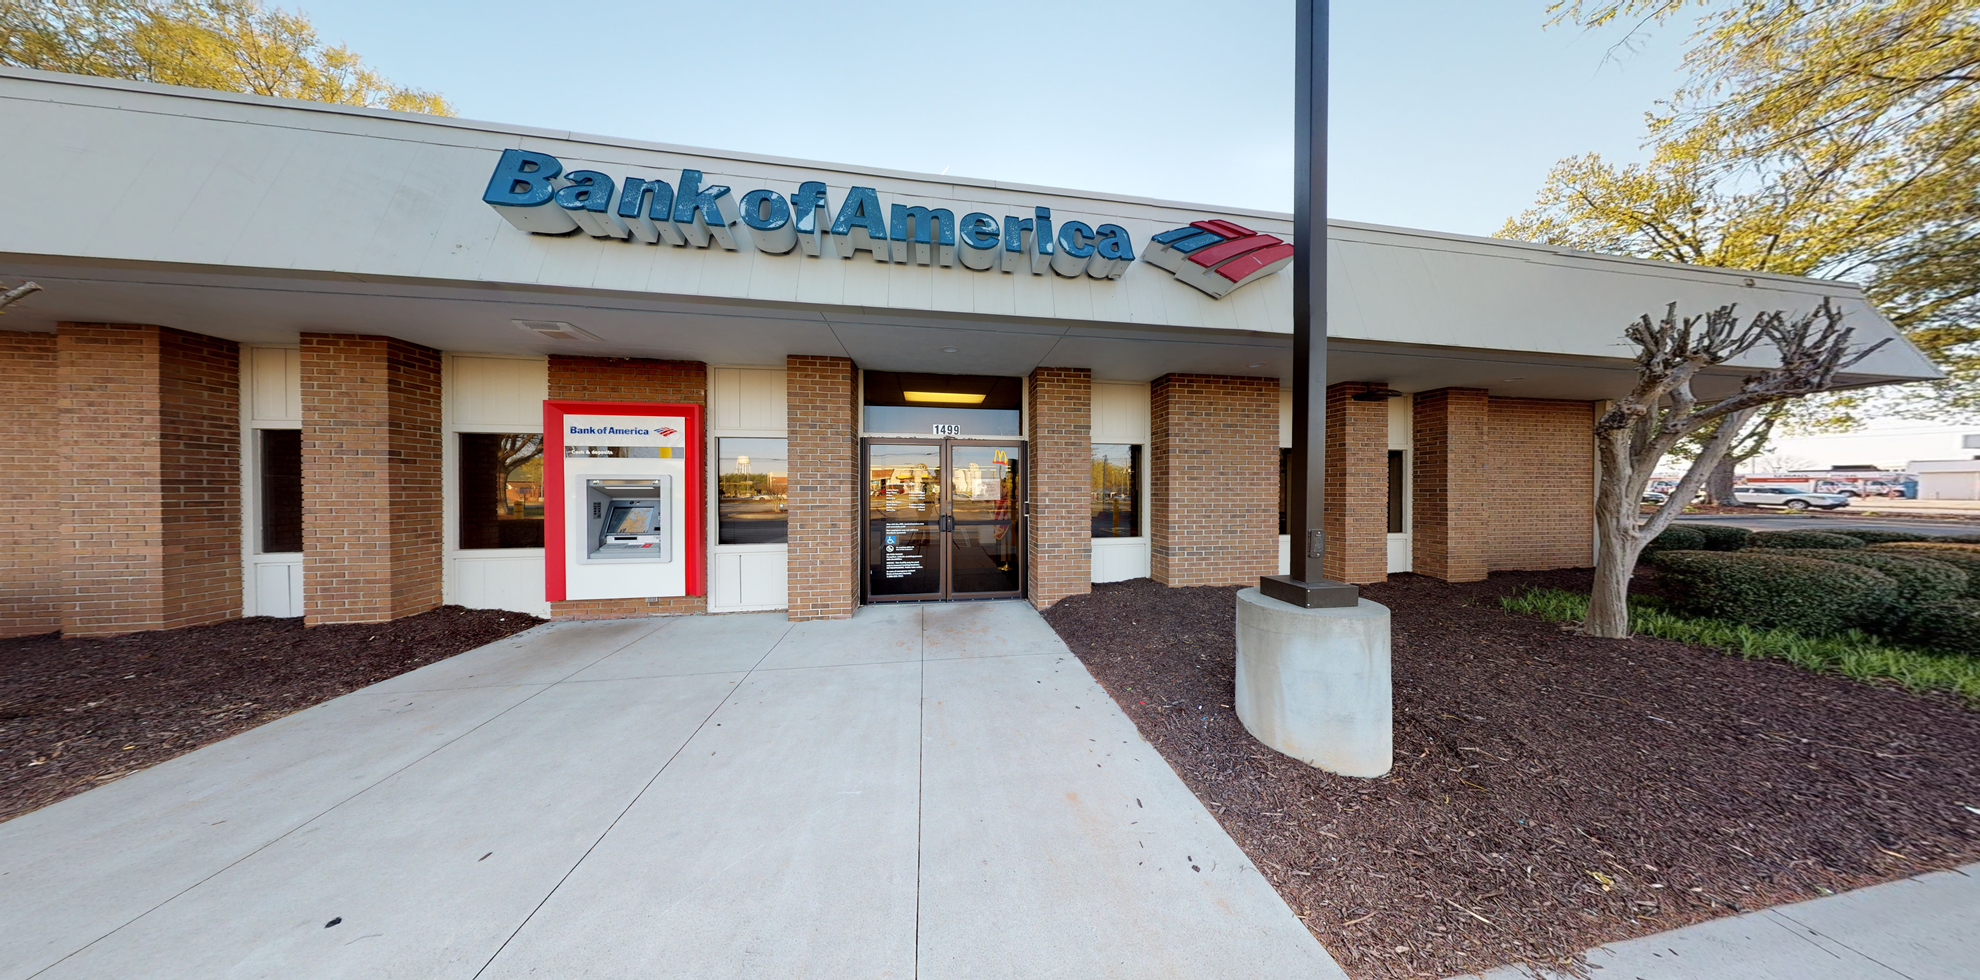 Bank of America financial center with drive-thru ATM and teller | 1499 Pearman Dairy Rd, Anderson, SC 29625